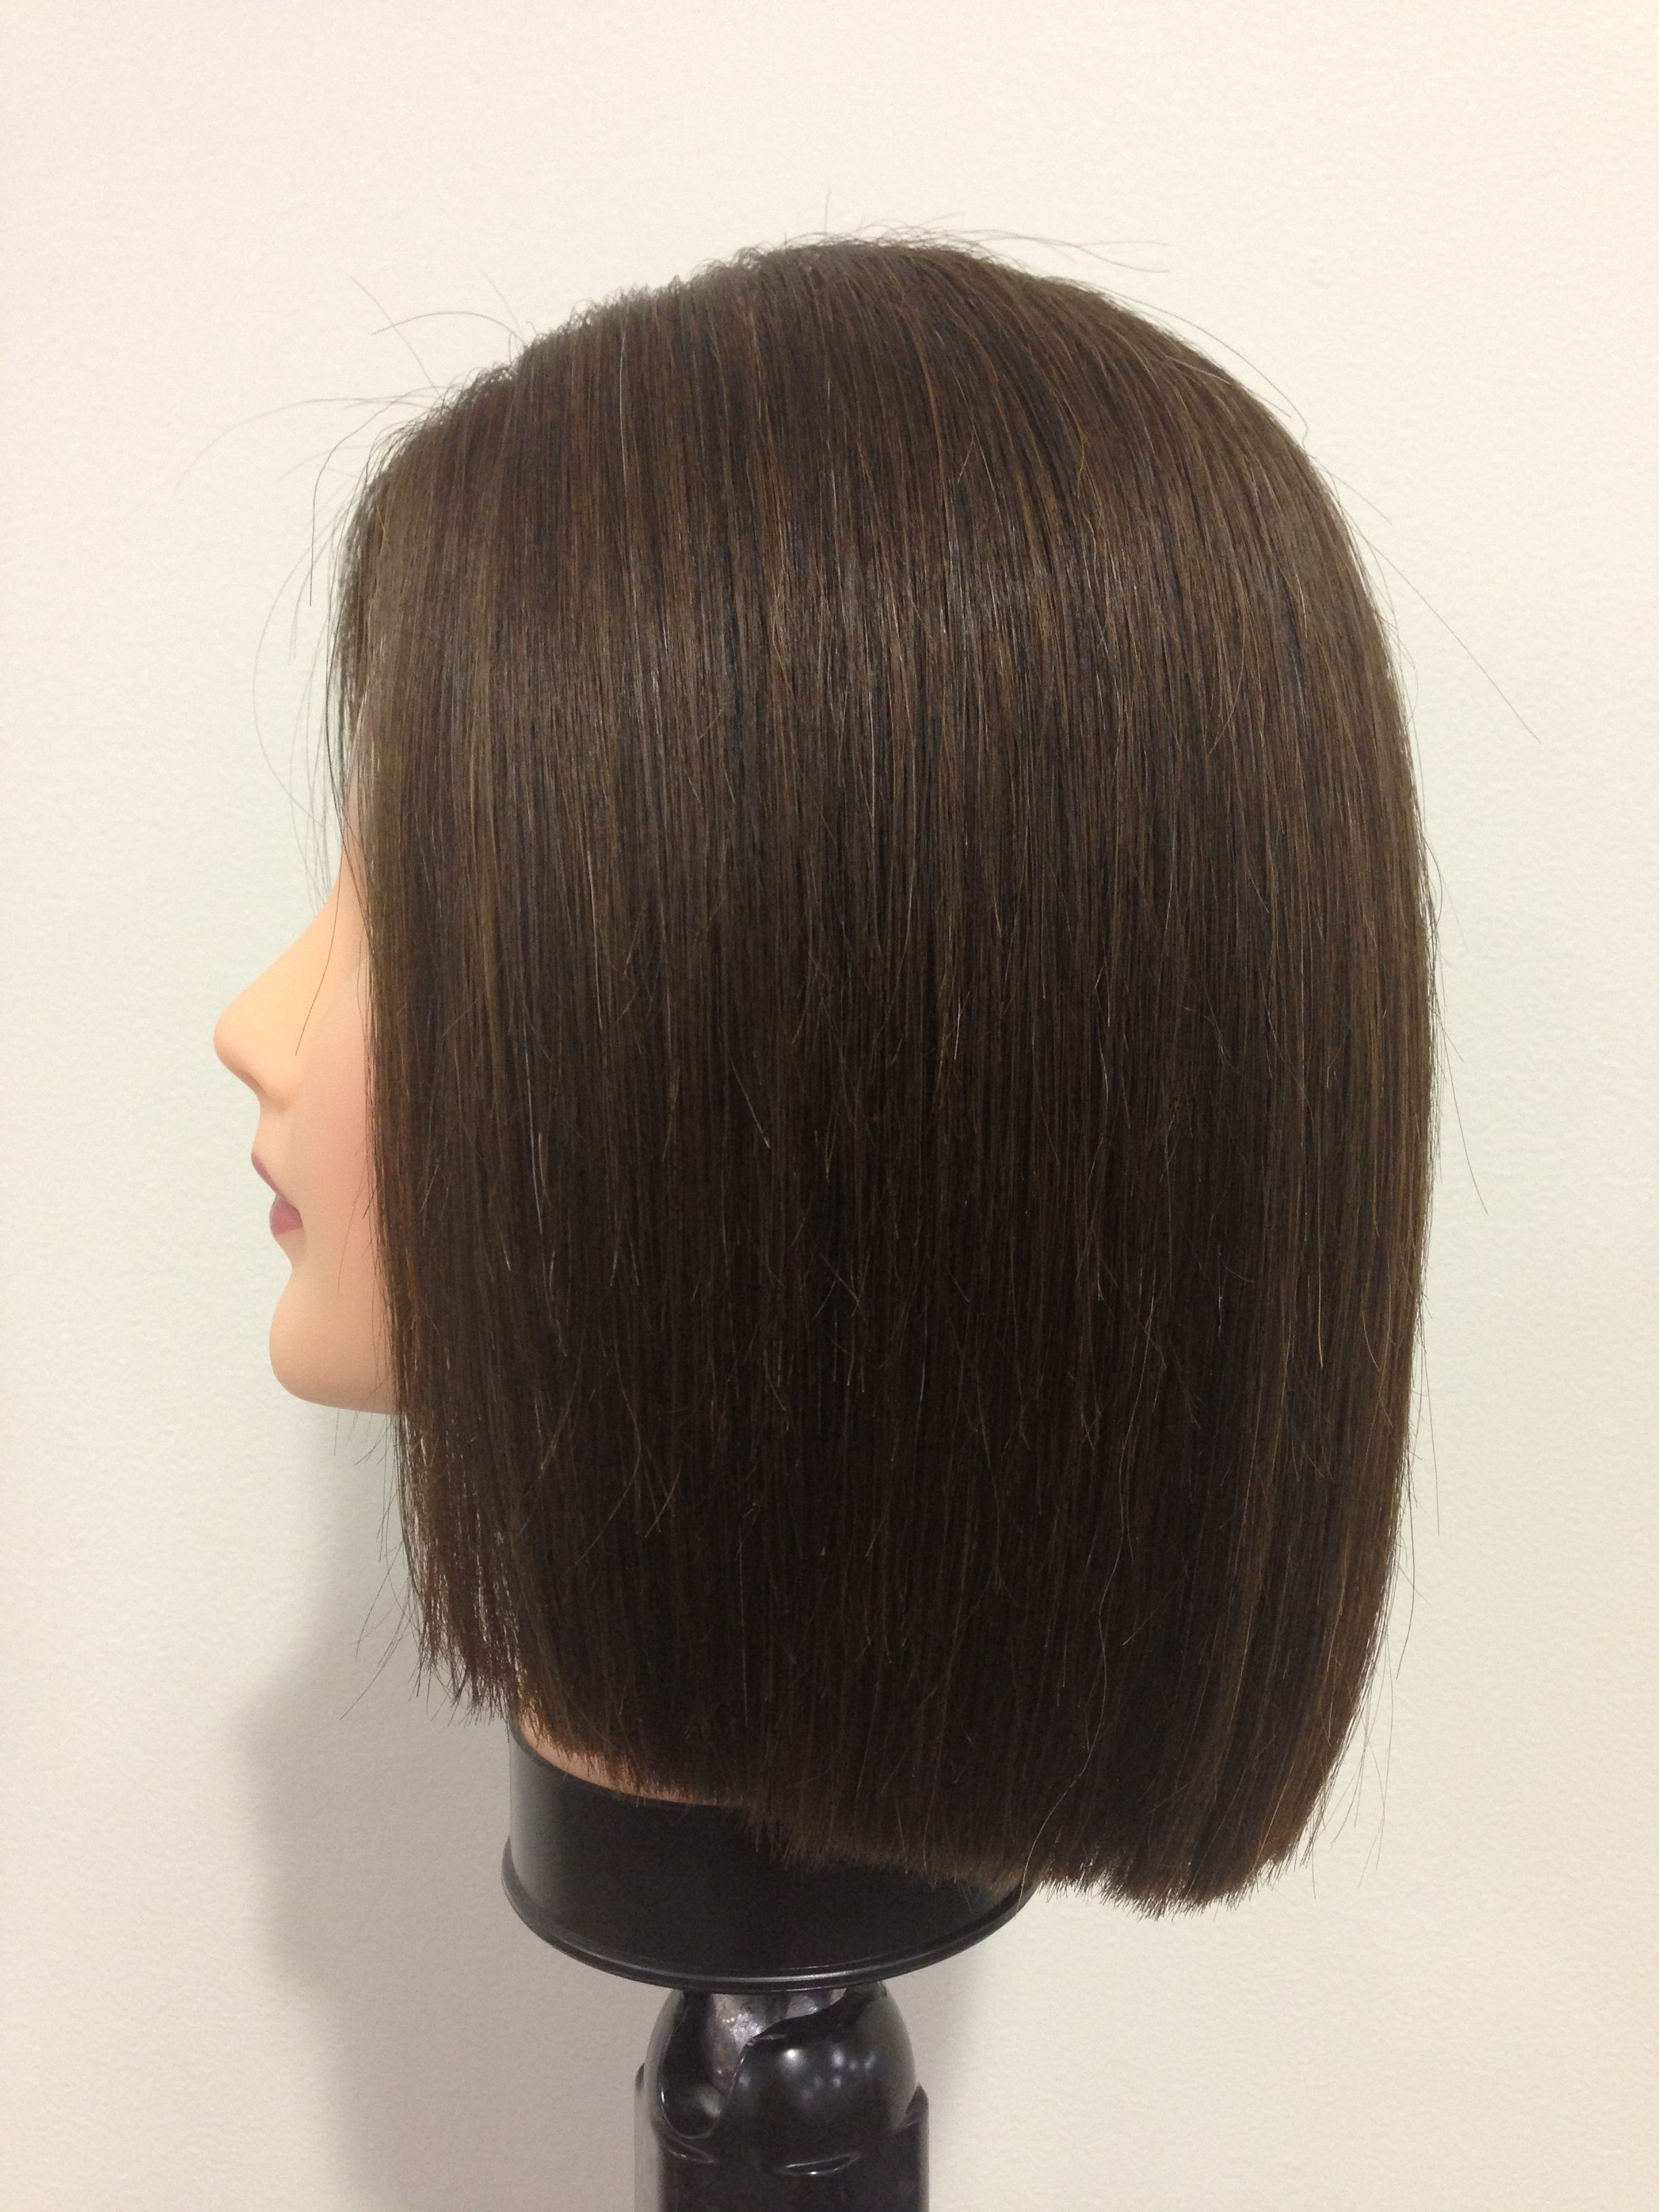 Remarkable First Haircut I Learned One Length Haircut Techniques Ive Hairstyles For Men Maxibearus